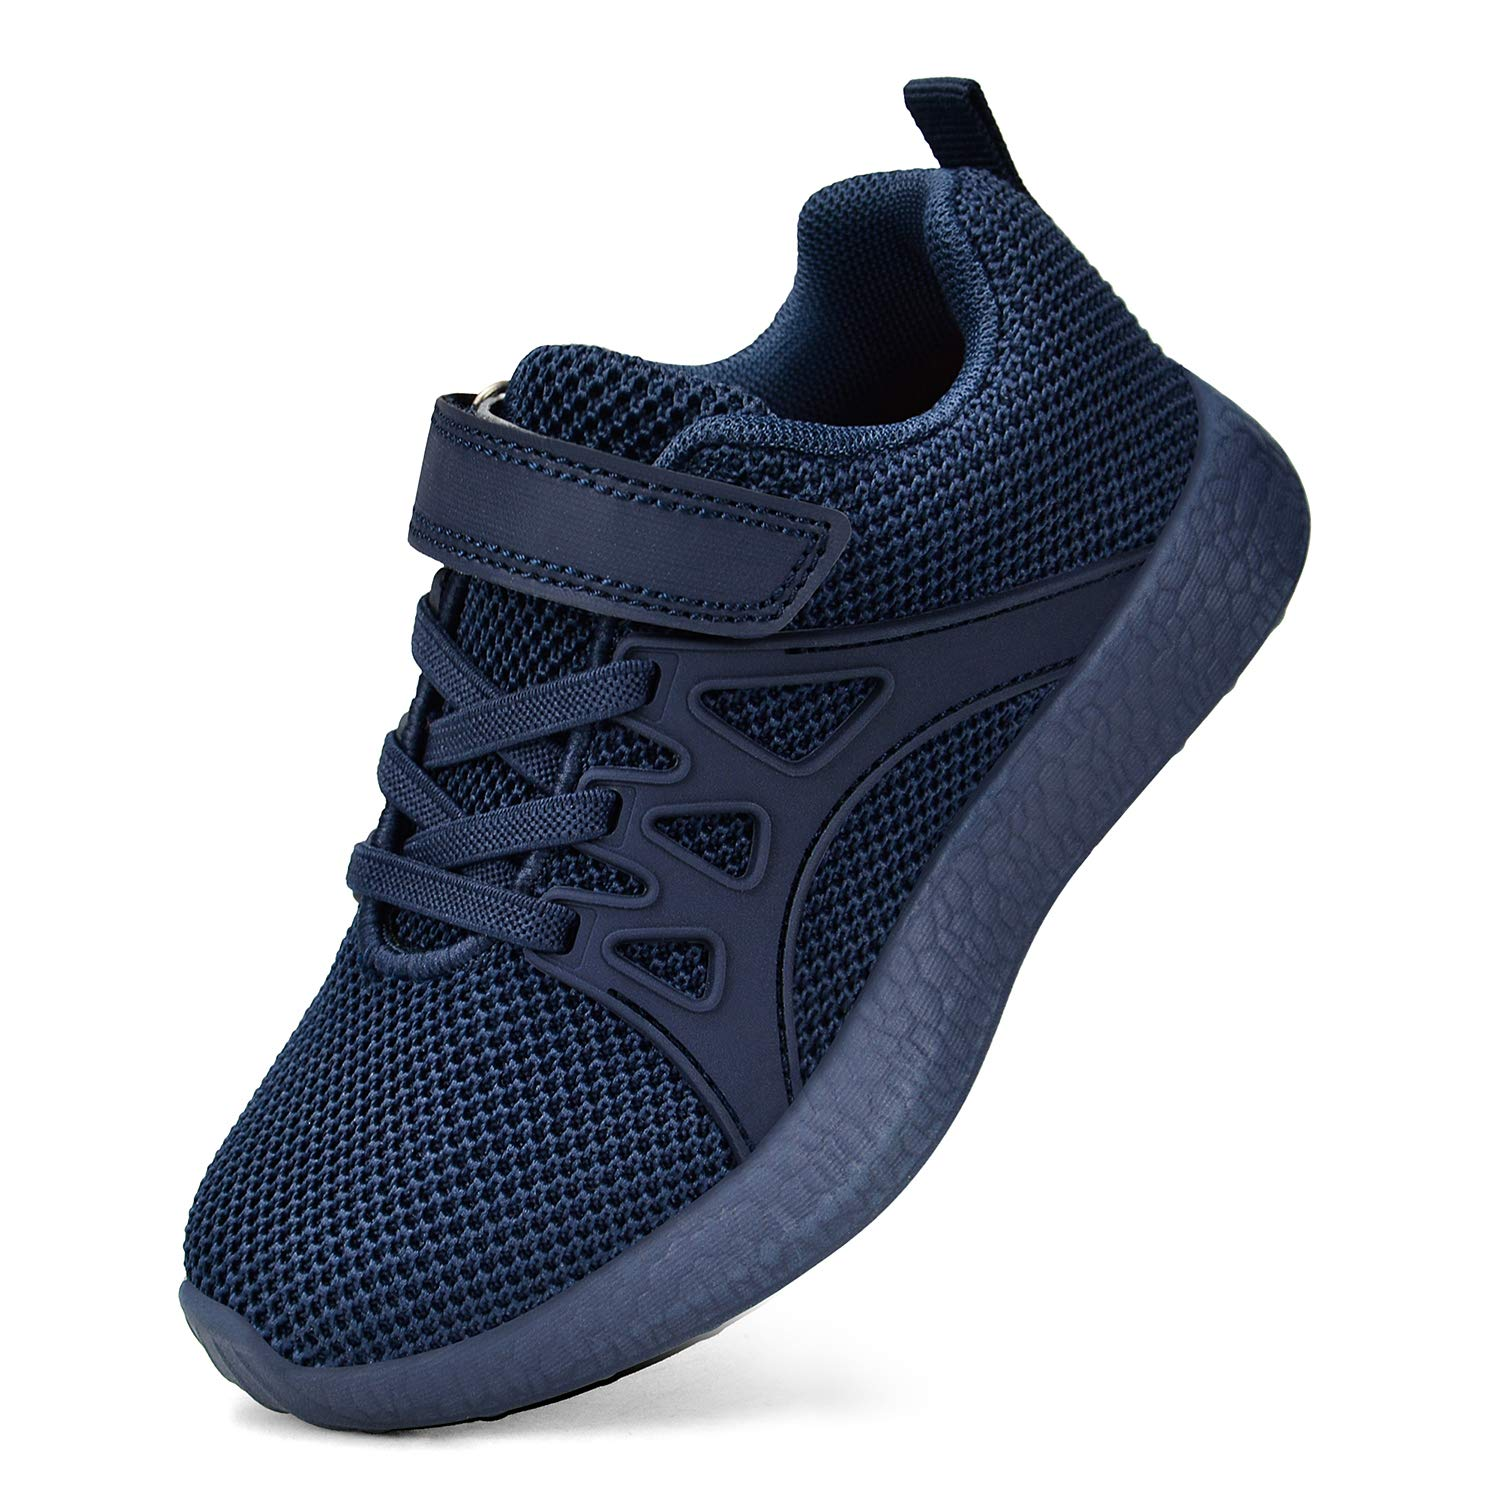 SouthBrothers Boys Shoes Mesh Breathable Kids Shoes for Girls All Blue Size 1.5 M US Little Kid